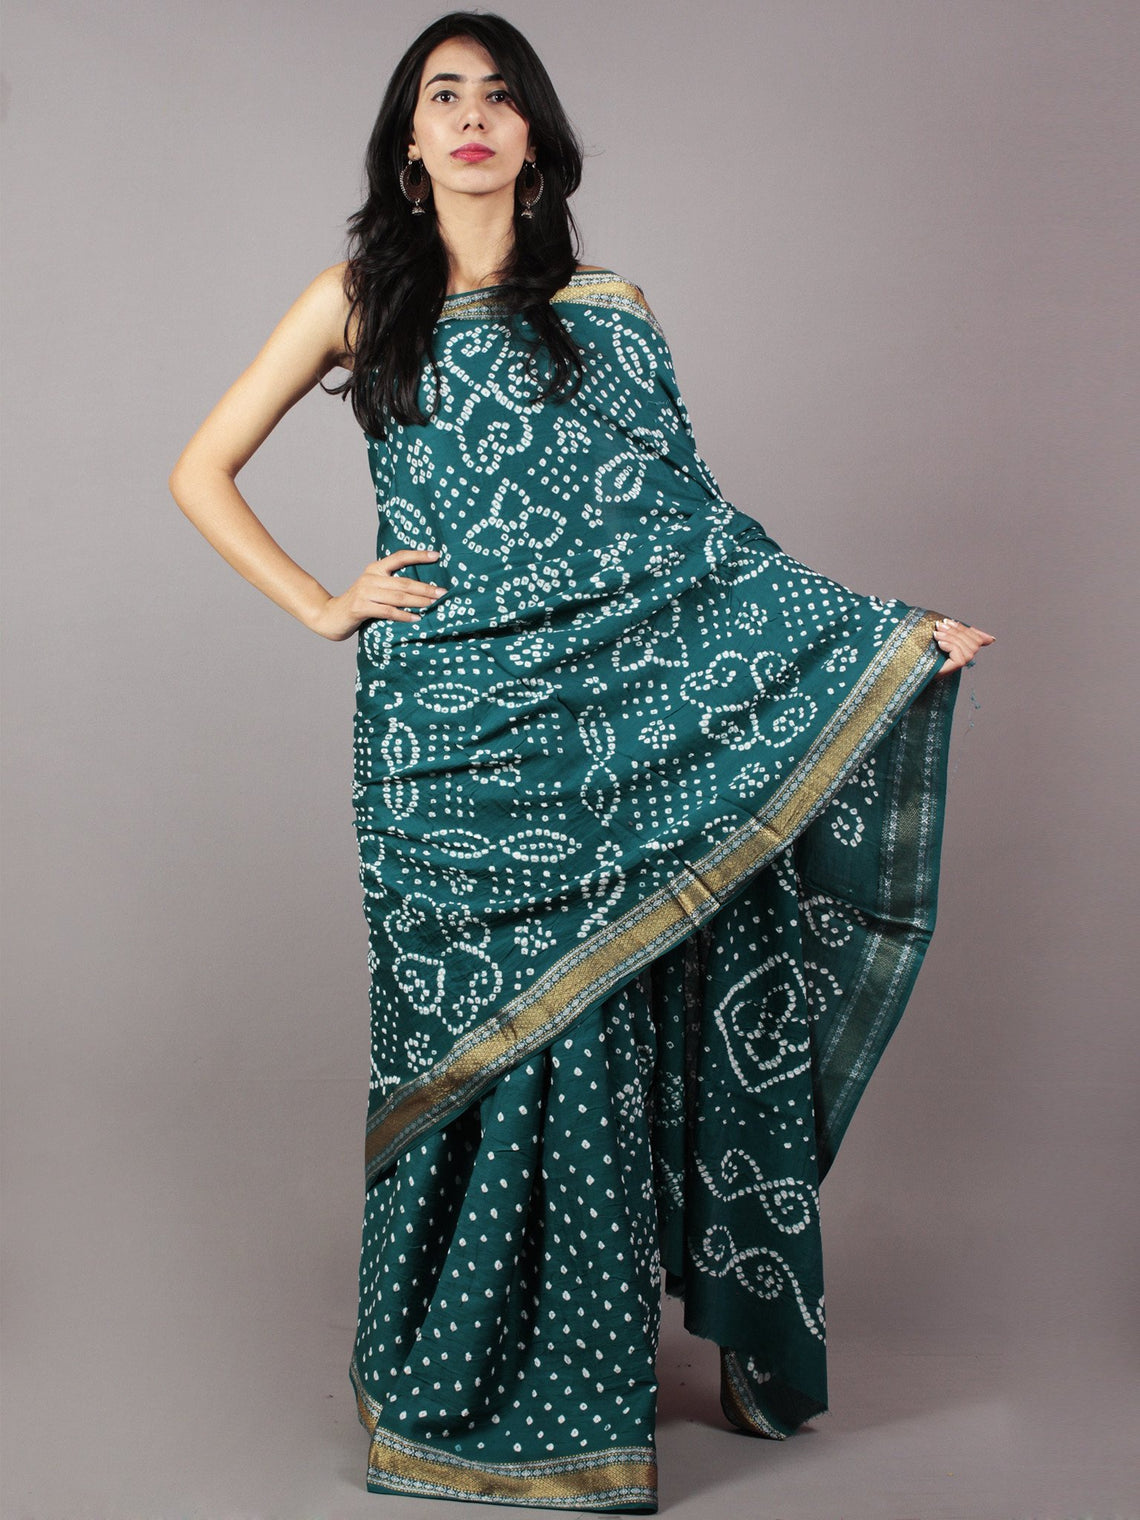 Dark Basil Green Ivory Hand Tie & Dye Bandhej Glace Cotton Saree With Resham Border - S031701731